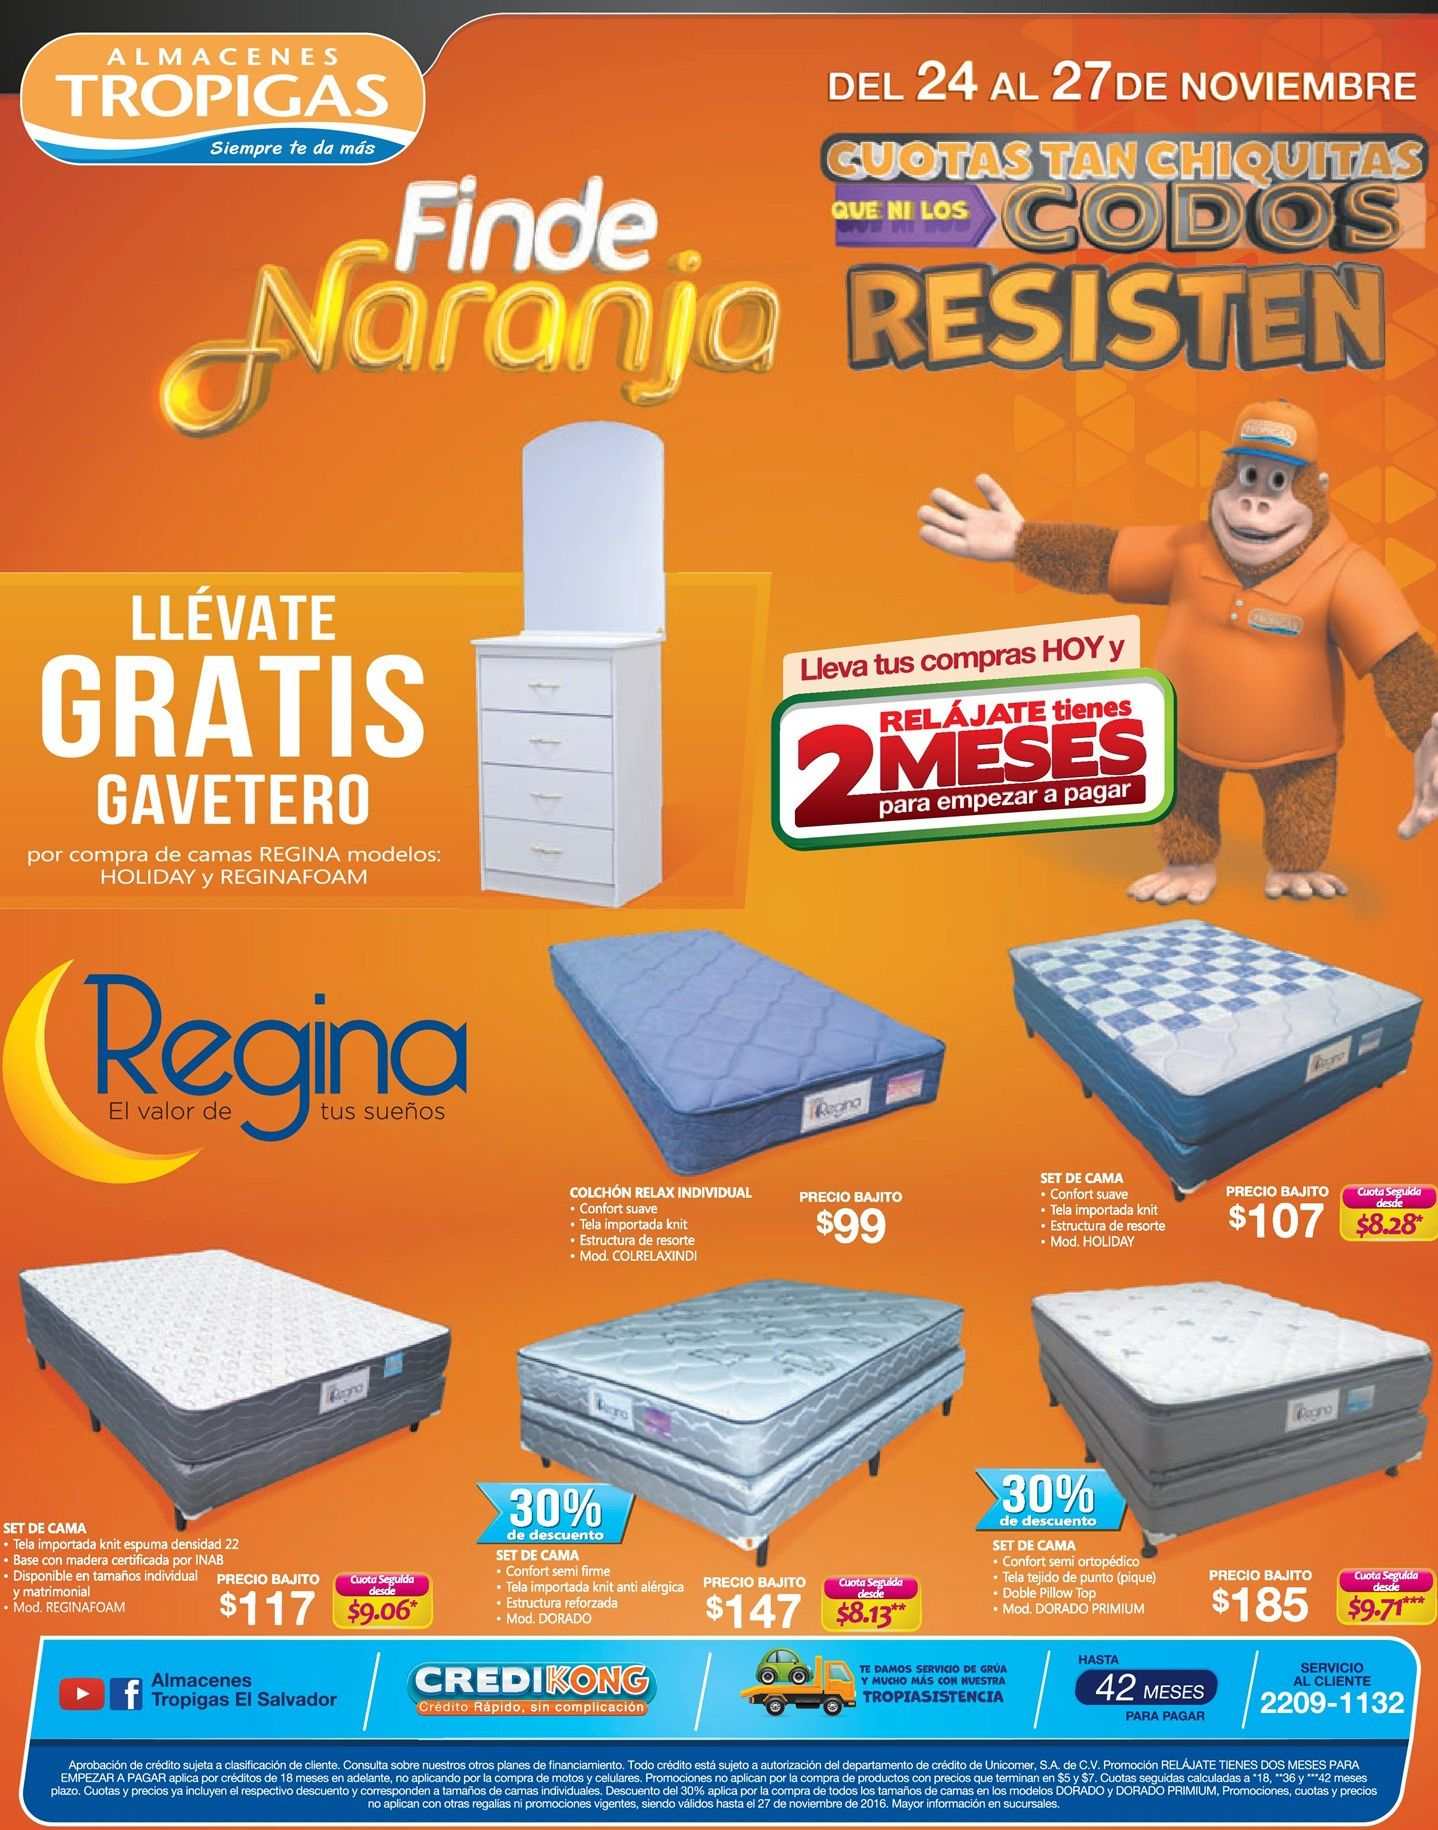 dreams-deals-for-black-friday-2016-regina-by-almacenes-tropigas